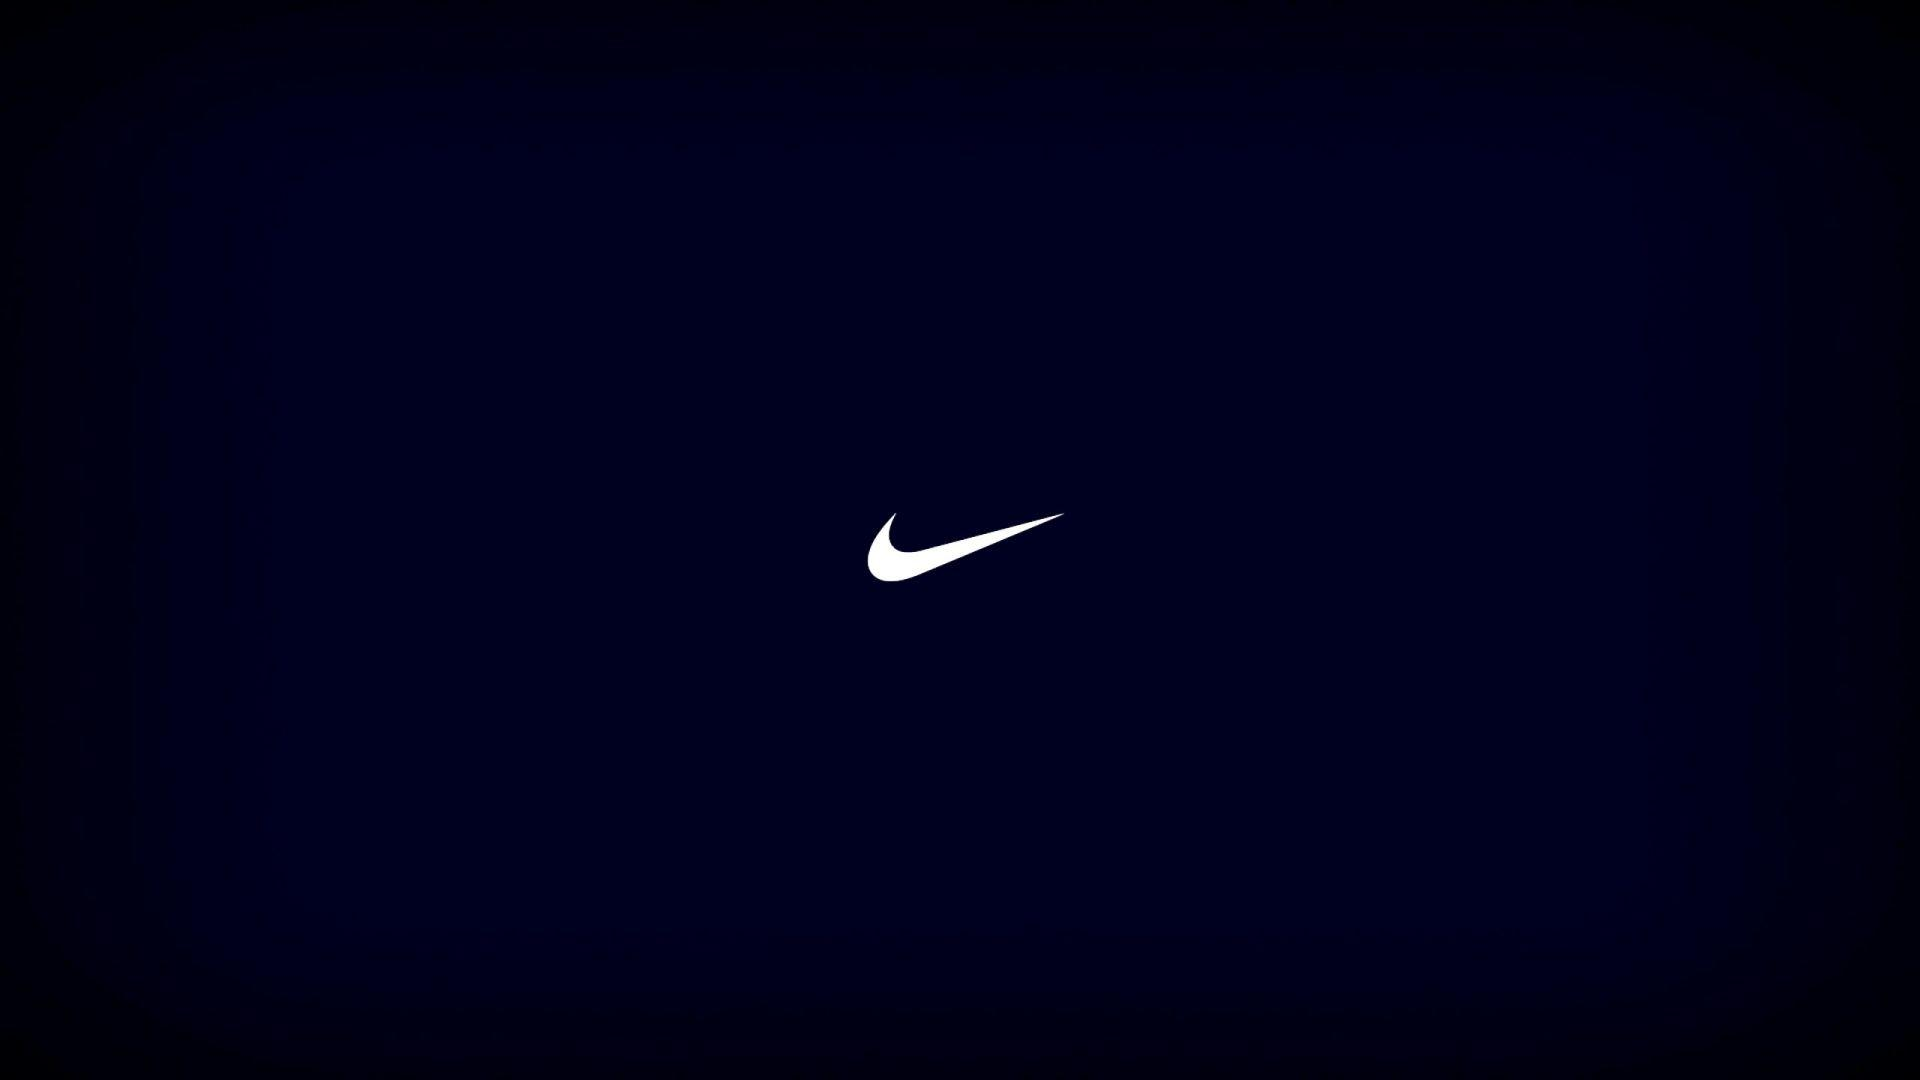 Free Nike Wallpaper Backgrounds - Wallpaper Cave